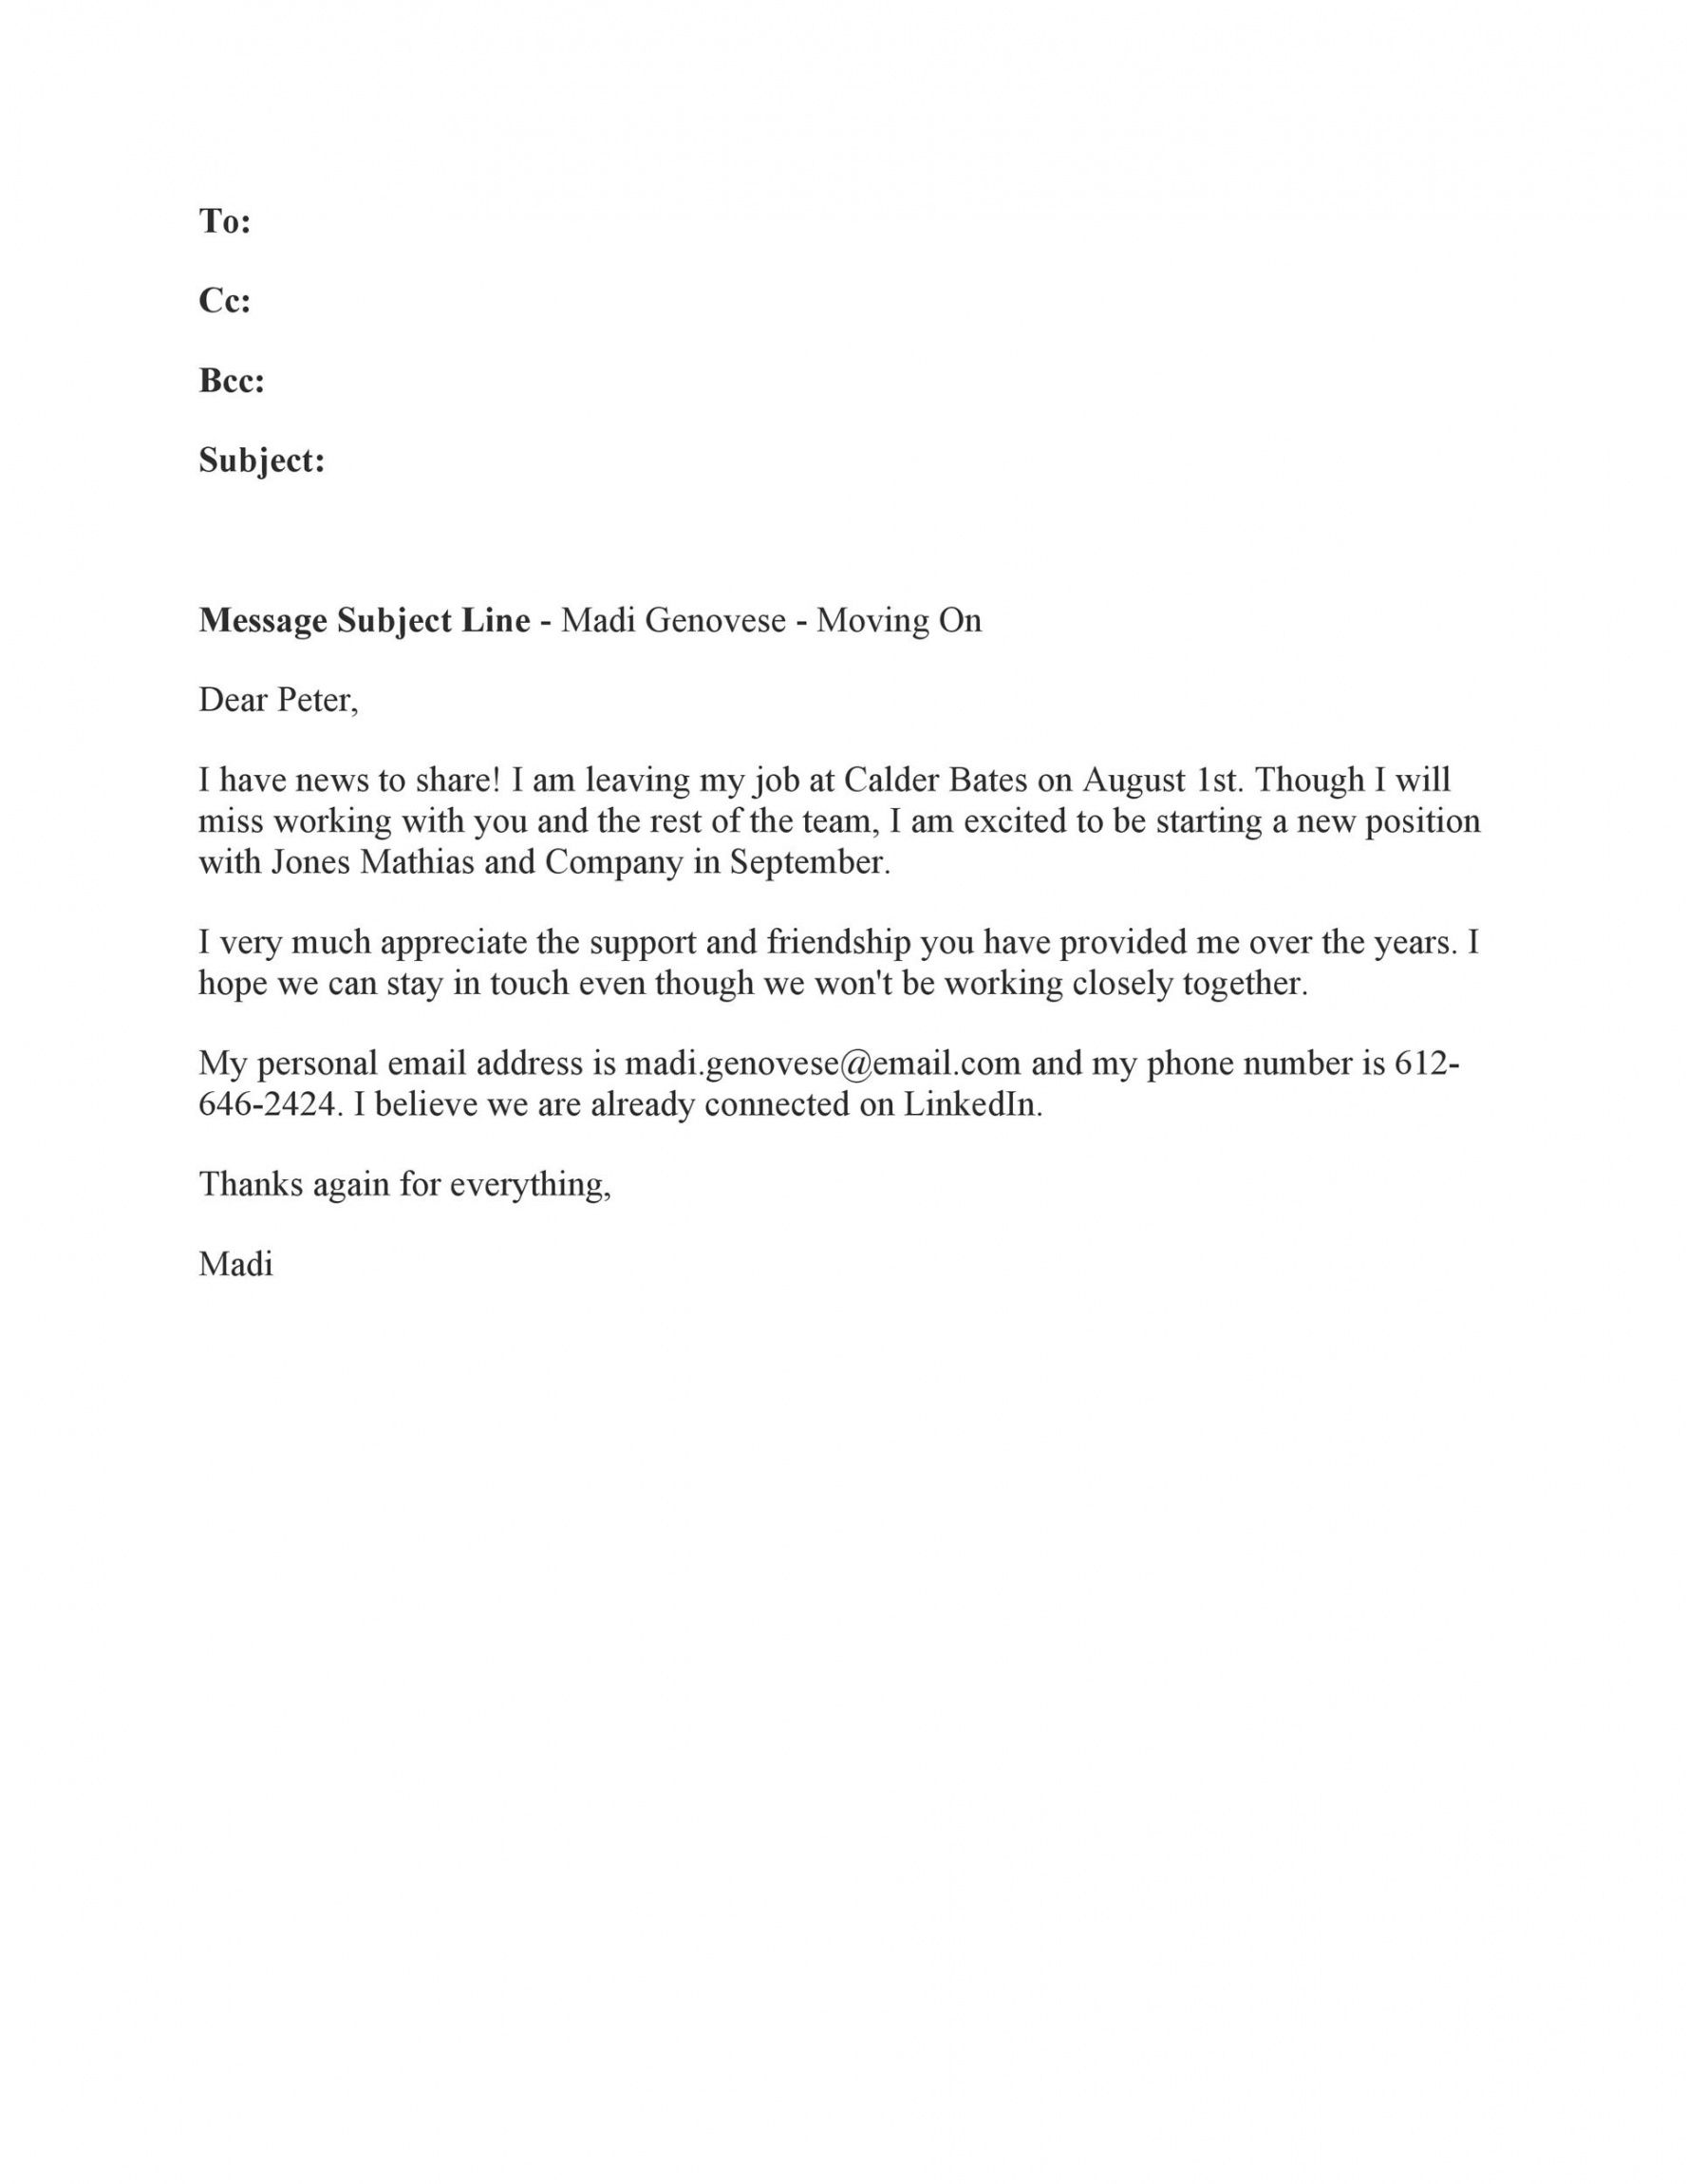 40 farewell email templates to coworkers  templatelab heartfelt resignation letter to coworkers example